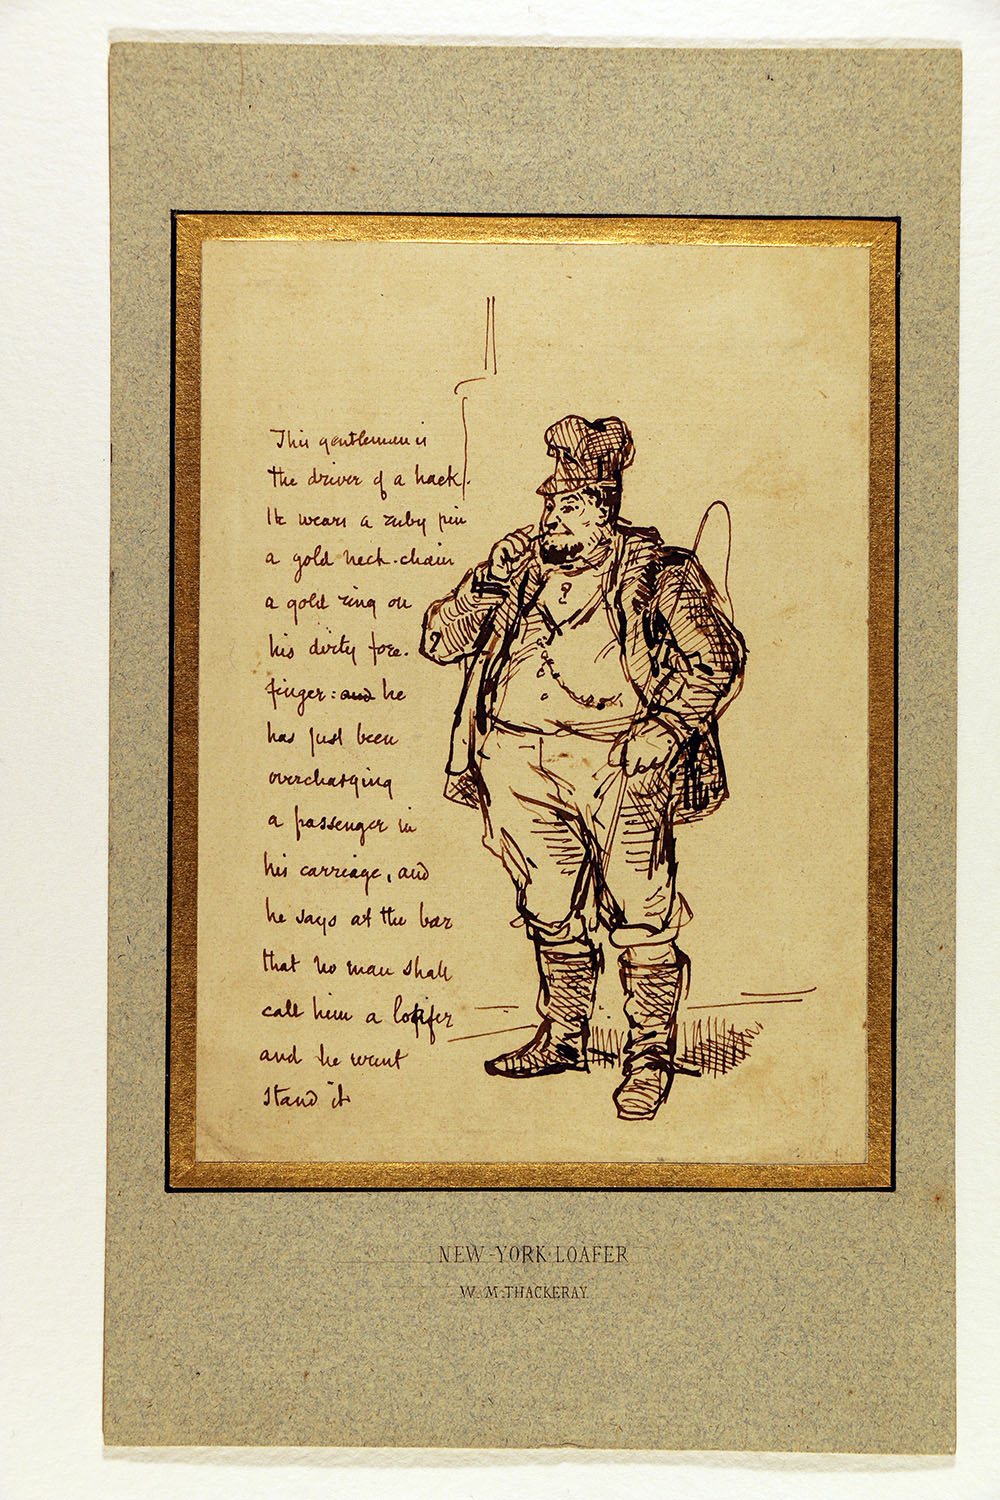 """New York Loafer"" caricature by William Makepeace Thackeray."